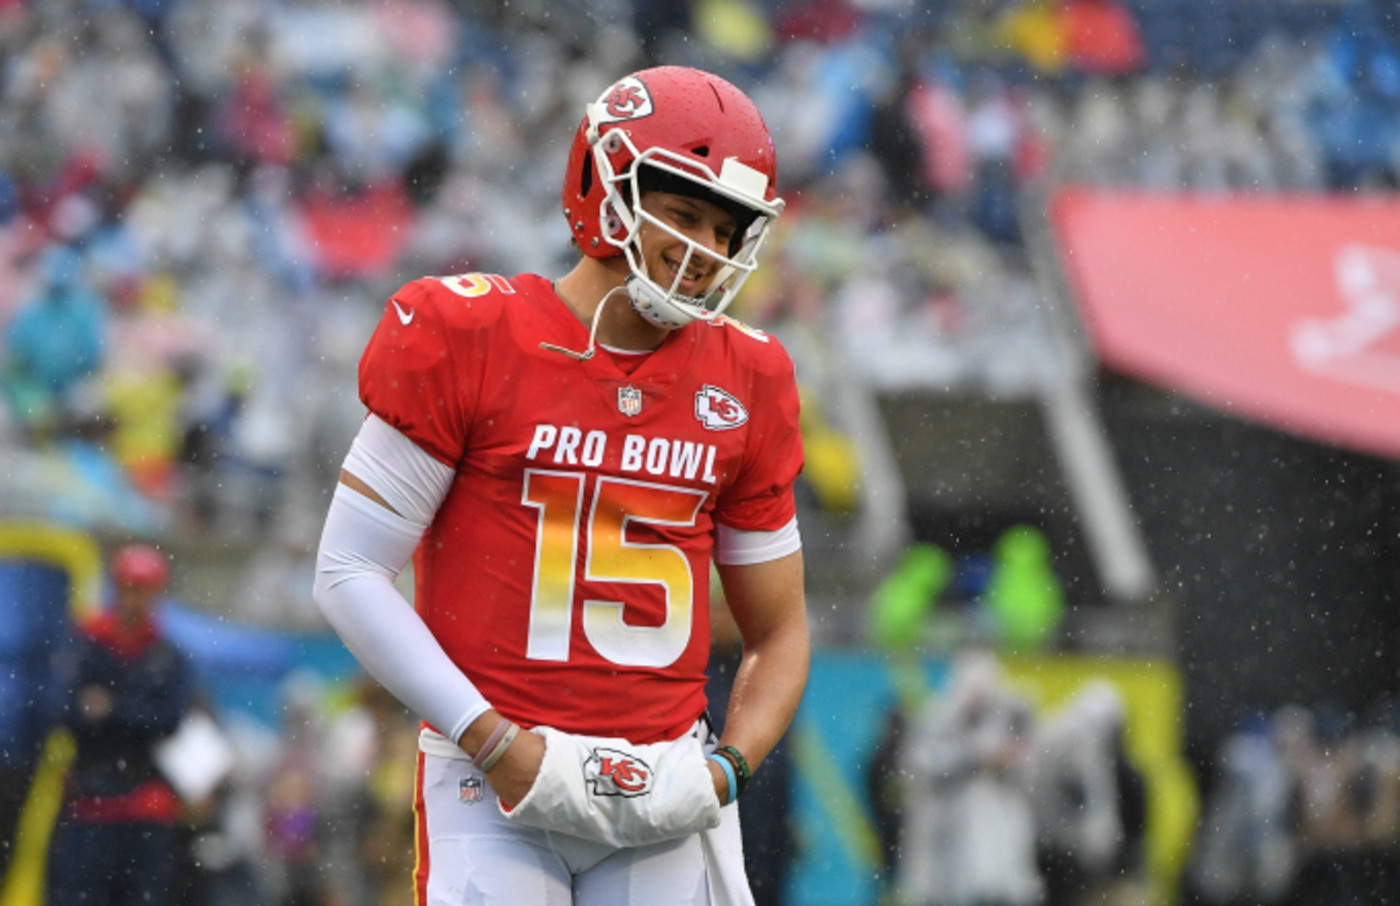 Patrick Mahomes #15 of the Kansas City Chiefs in action during the 2019 NFL Pro Bowl